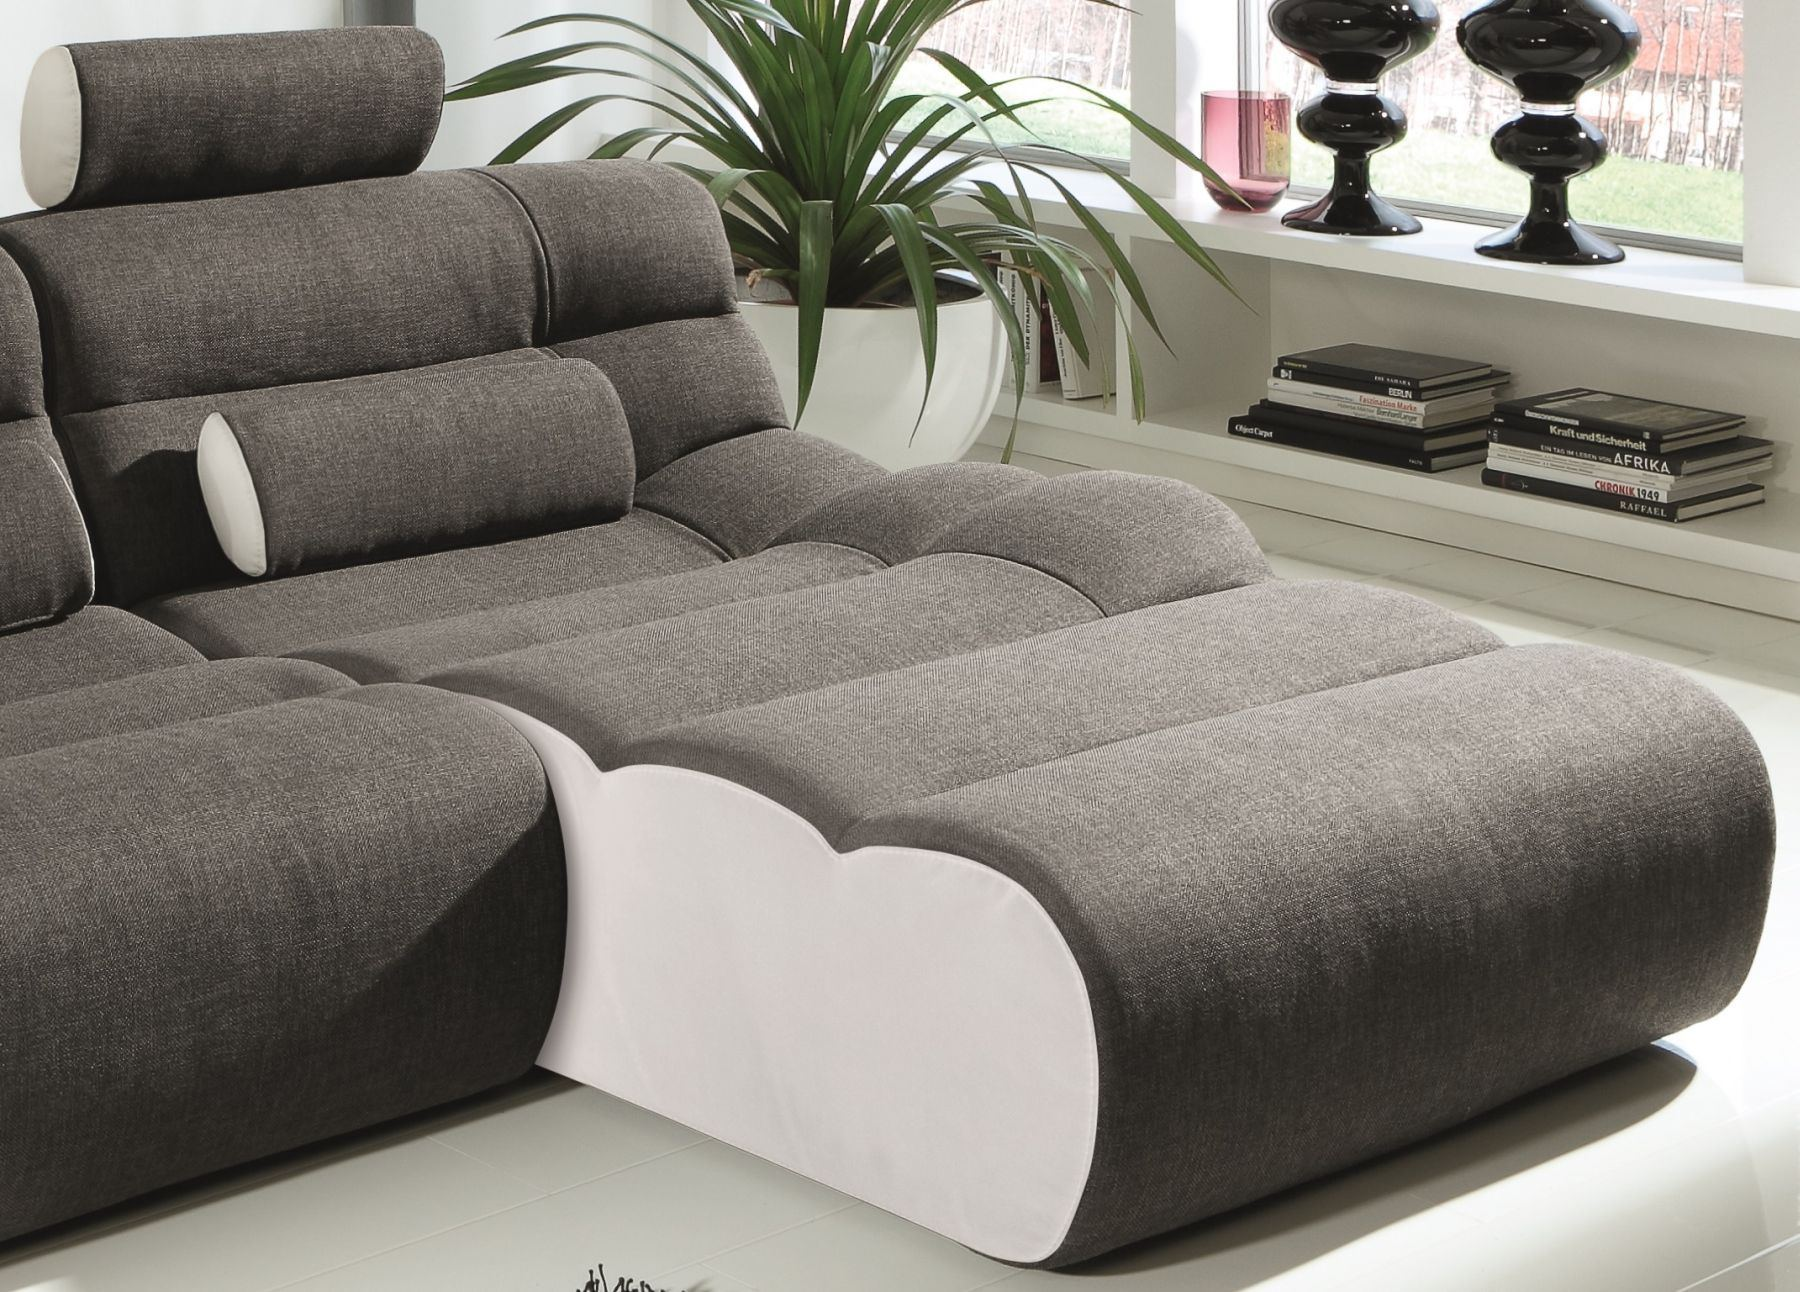 sofas ledersofa eckcouch elements eight systemcouch. Black Bedroom Furniture Sets. Home Design Ideas